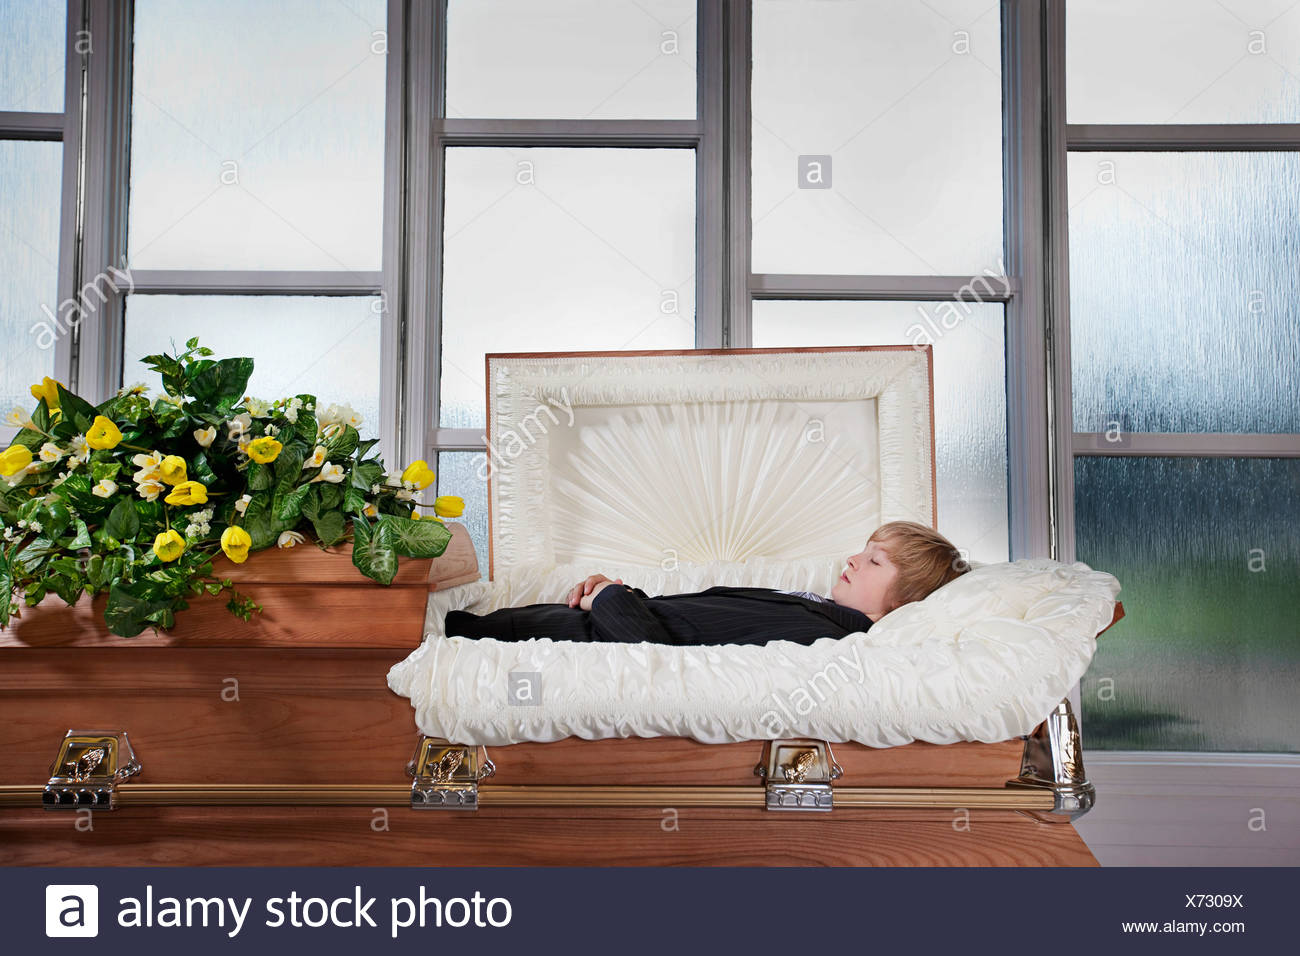 Dead Man And Coffin Stock Photos & Dead Man And Coffin Stock